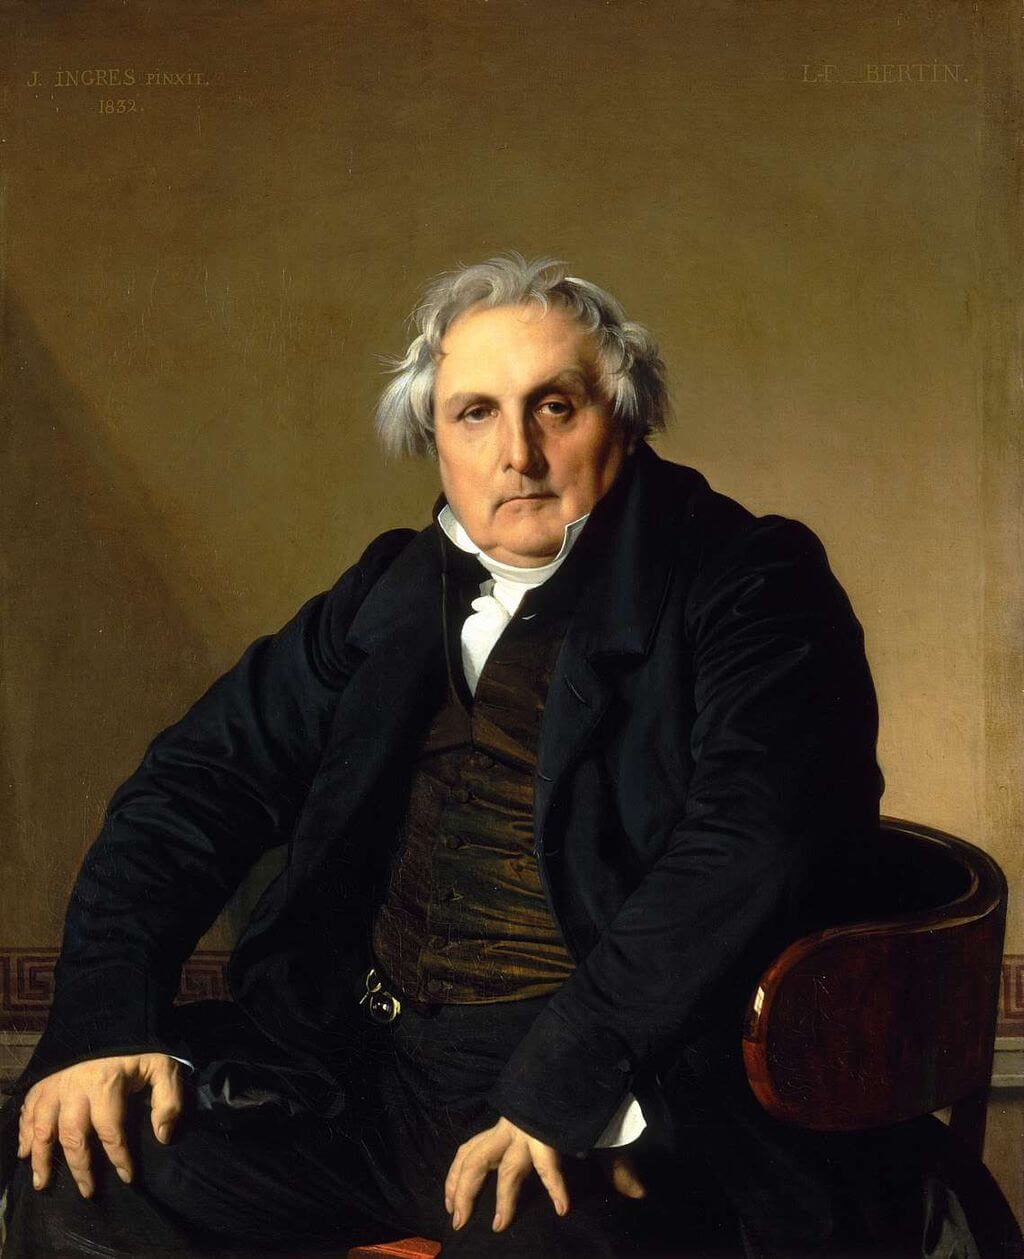 Portrait of Monsieur Bertin by Jean-Auguste-Dominique Ingres in the Louvre Museum in Paris